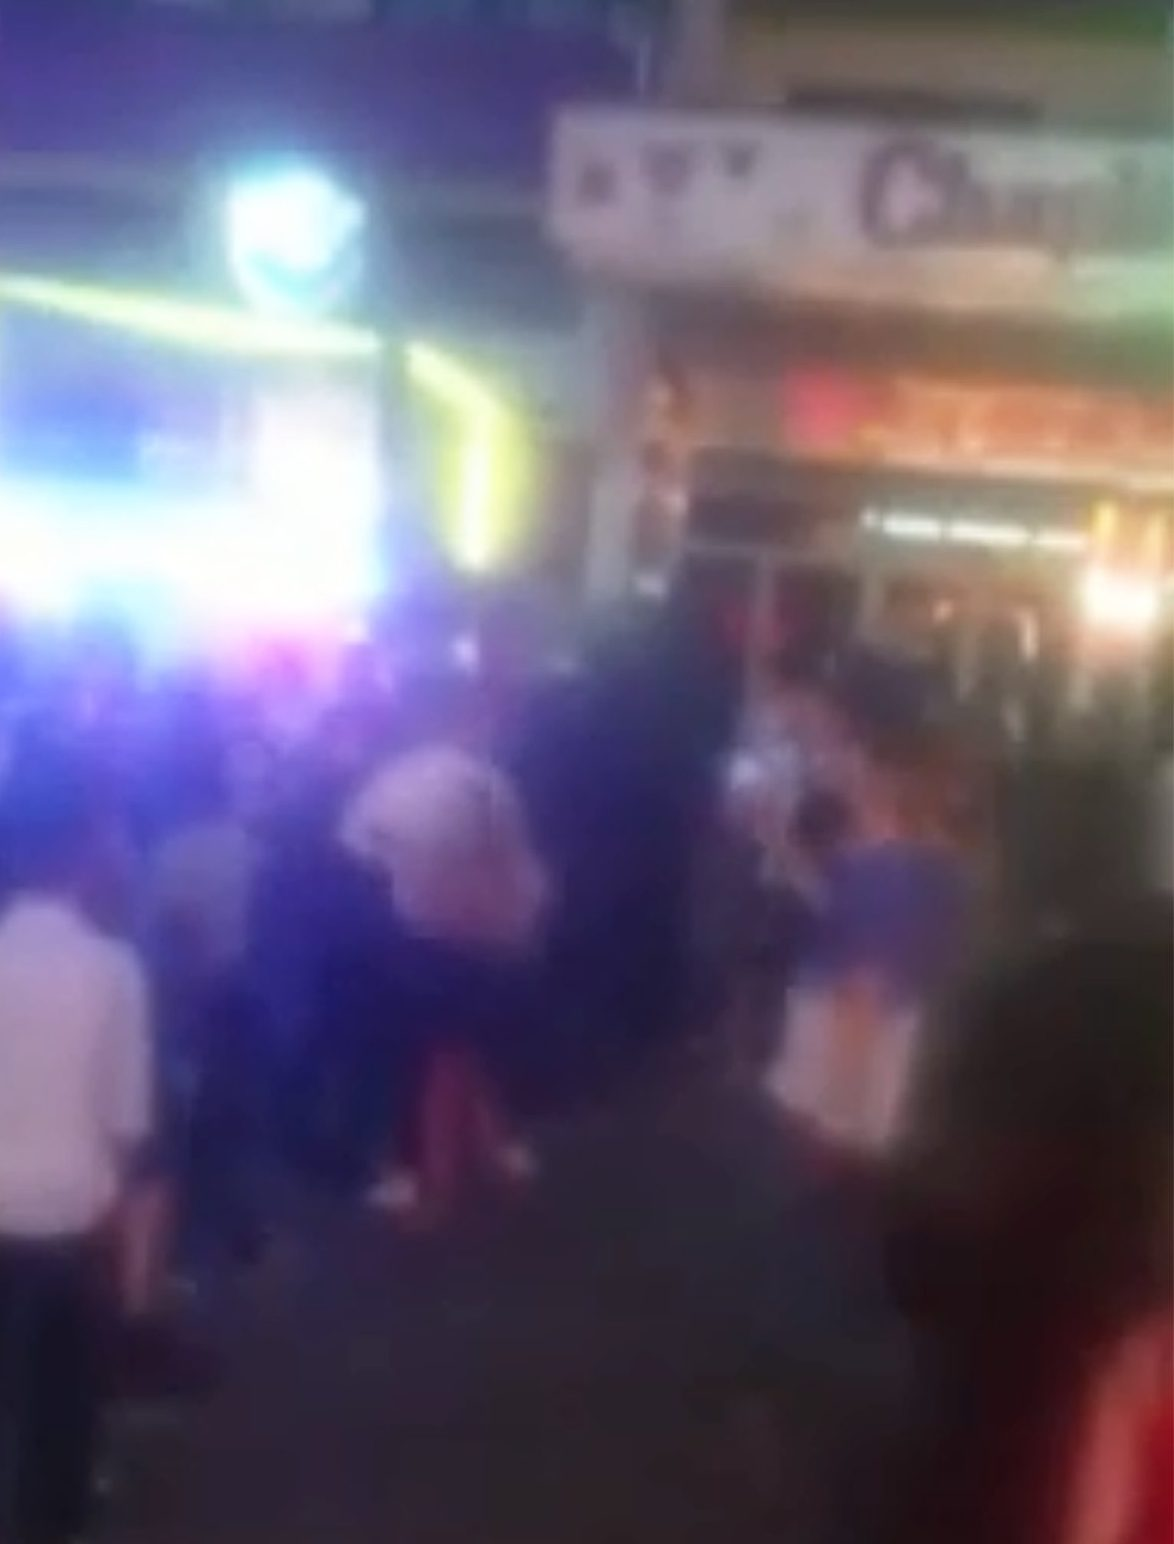 British woman knocked out in fight between tourists in Magaluf METRO GRAB taken from: http://video.metro.co.uk/video/met/2018/05/31/5124274052239347002/640x360_MP4_5124274052239347002.mp4 Credit: Ultima Hora